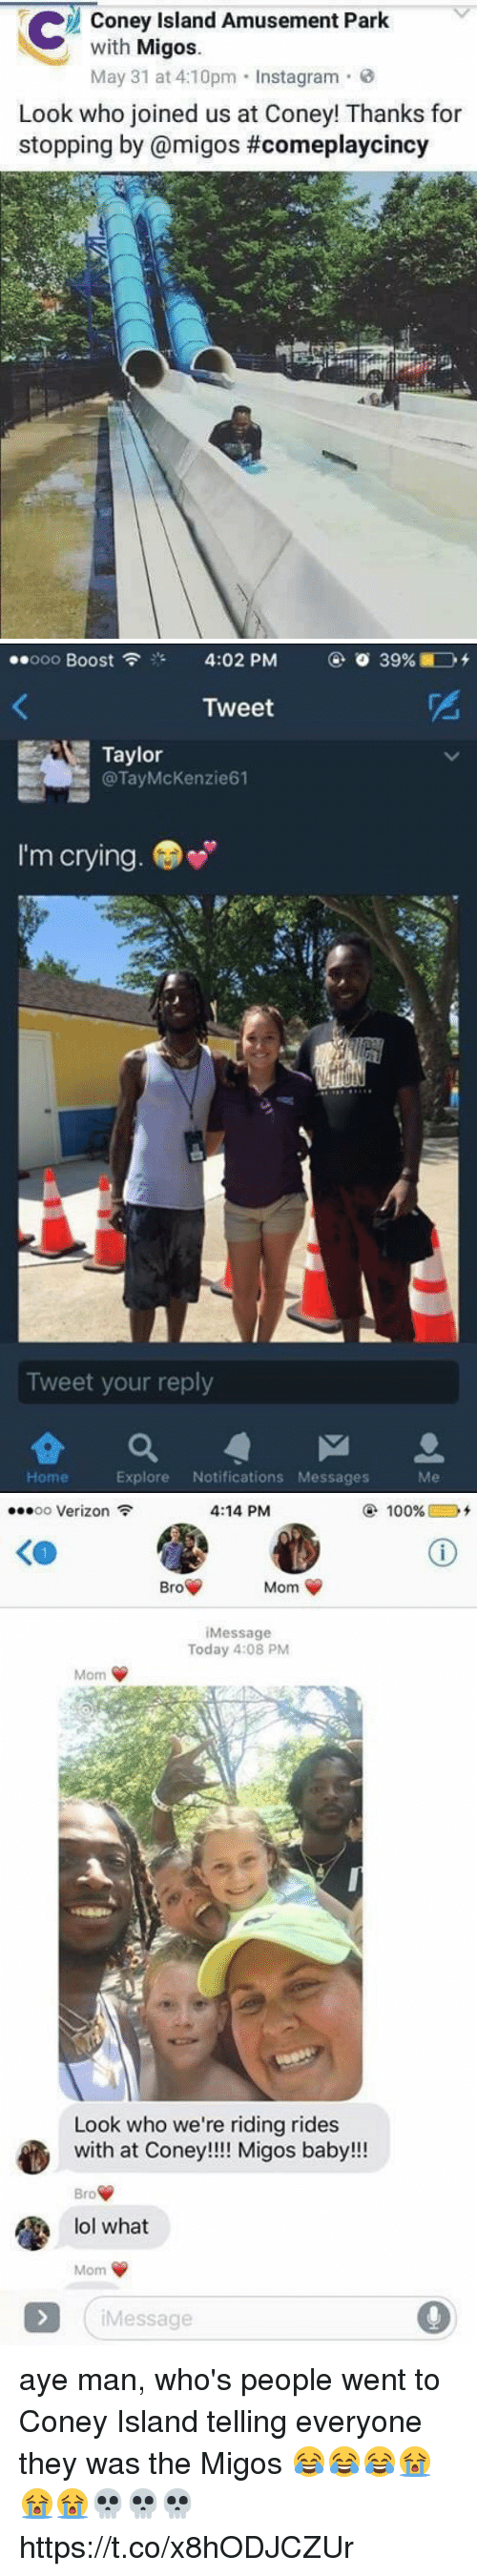 Anaconda, Blackpeopletwitter, and Crying: Coney Island Amusement Park  with  Migos.  May 31 at 4:10pm Instagram.  Look who joined us at Coney! Thanks for  stopping by @migos #comeplaycincy   ..ooo Boost  4:02 PM  o 39%  Tweet  Taylor  @Tay McKenzie 61  I'm crying.  Tweet your reply  Explore Notifications Messages  Home   ...oo Verizon  4:14 PM  100%  Mom  Bro  Message  Today 4:08 PM  Mom V  Look who we're riding rides  with at Coney  Migos baby!!!  Bro  lol what  Mom  Message aye man, who's people went to Coney Island telling everyone they was the Migos 😂😂😂😭😭😭💀💀💀 https://t.co/x8hODJCZUr